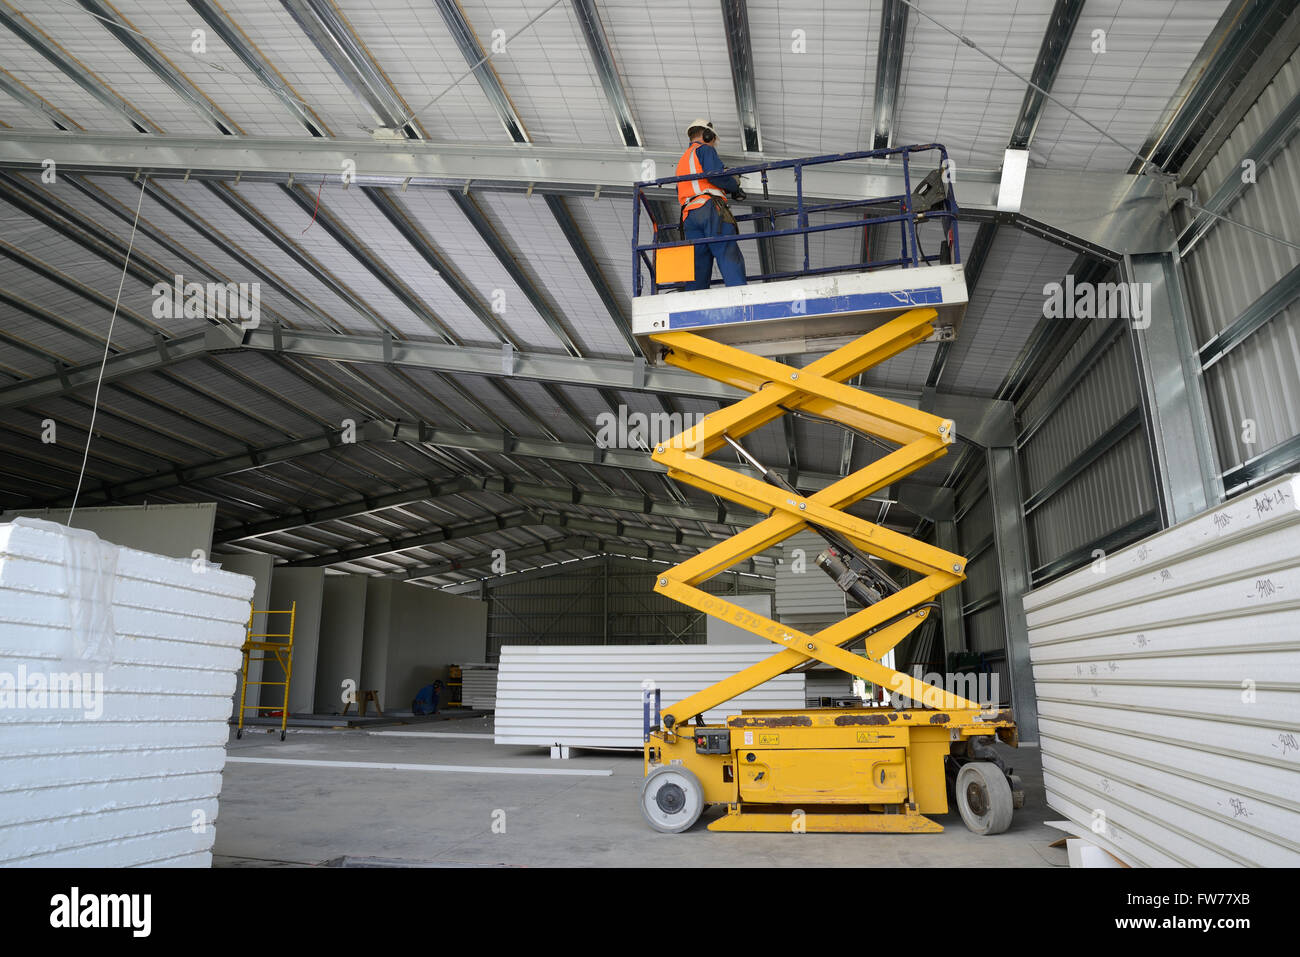 A Builder Works From The Cage On A Scissor Lift While